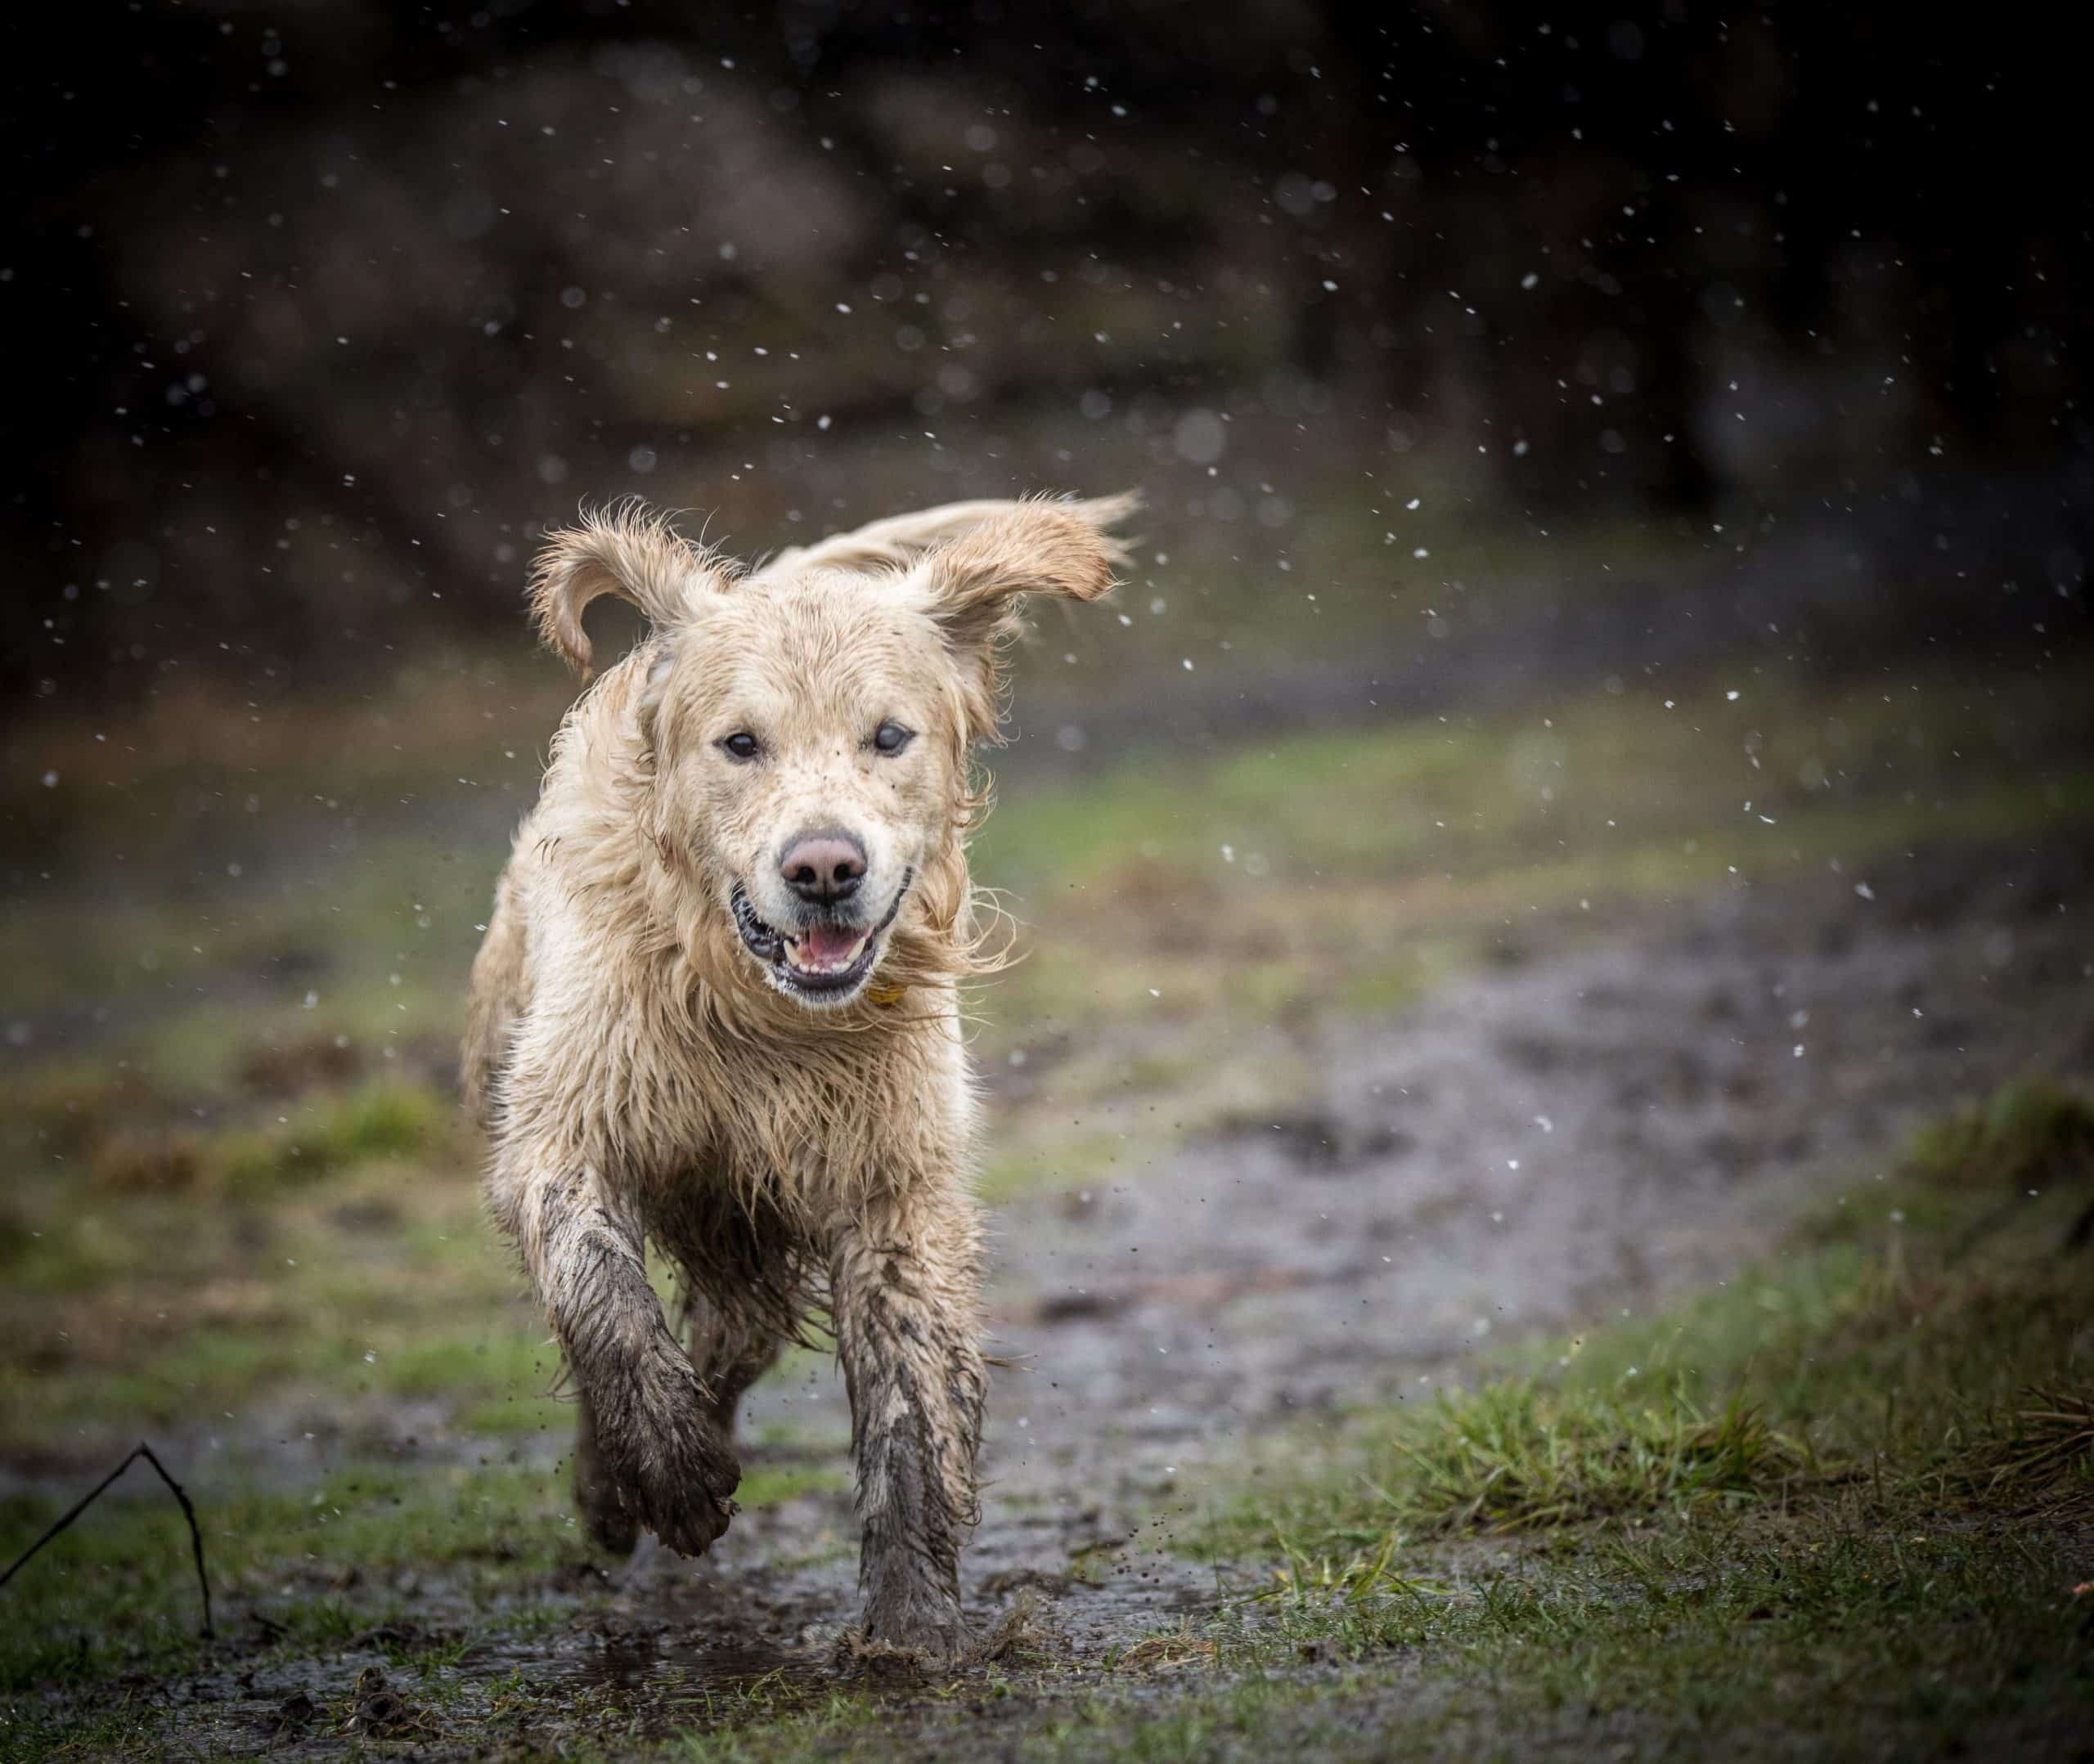 Muddy dog plays outside. The bacteria that causes leptospirosis is commonly found in stagnant bodies of water that wildlife use.